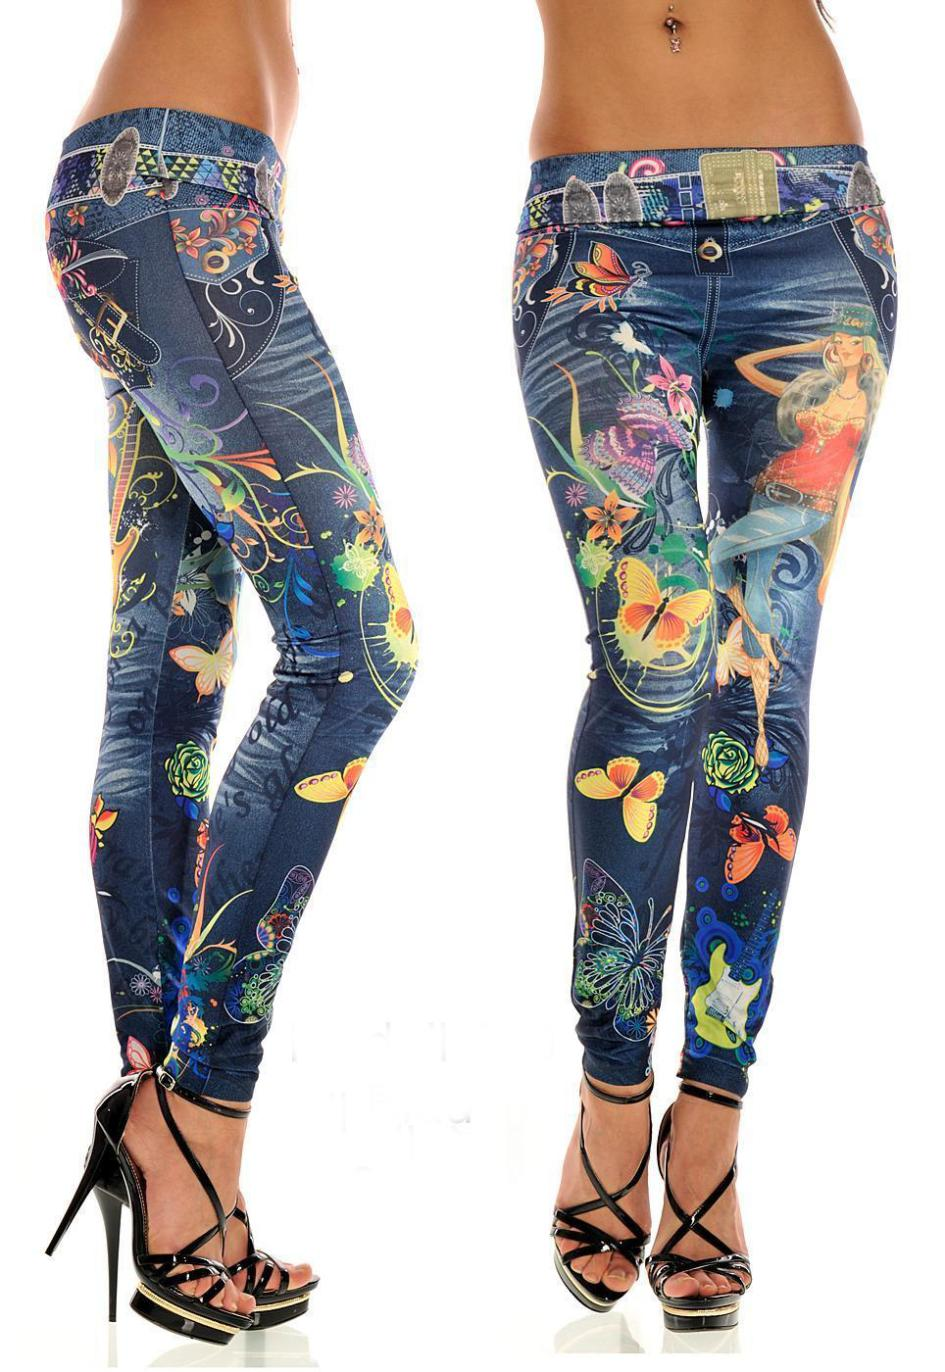 New Women Sexy Tattoo Jean Look Legging Sport Leggins Punk Fitness American Apparel Jeans Woman Pants 9052(China (Mainland))